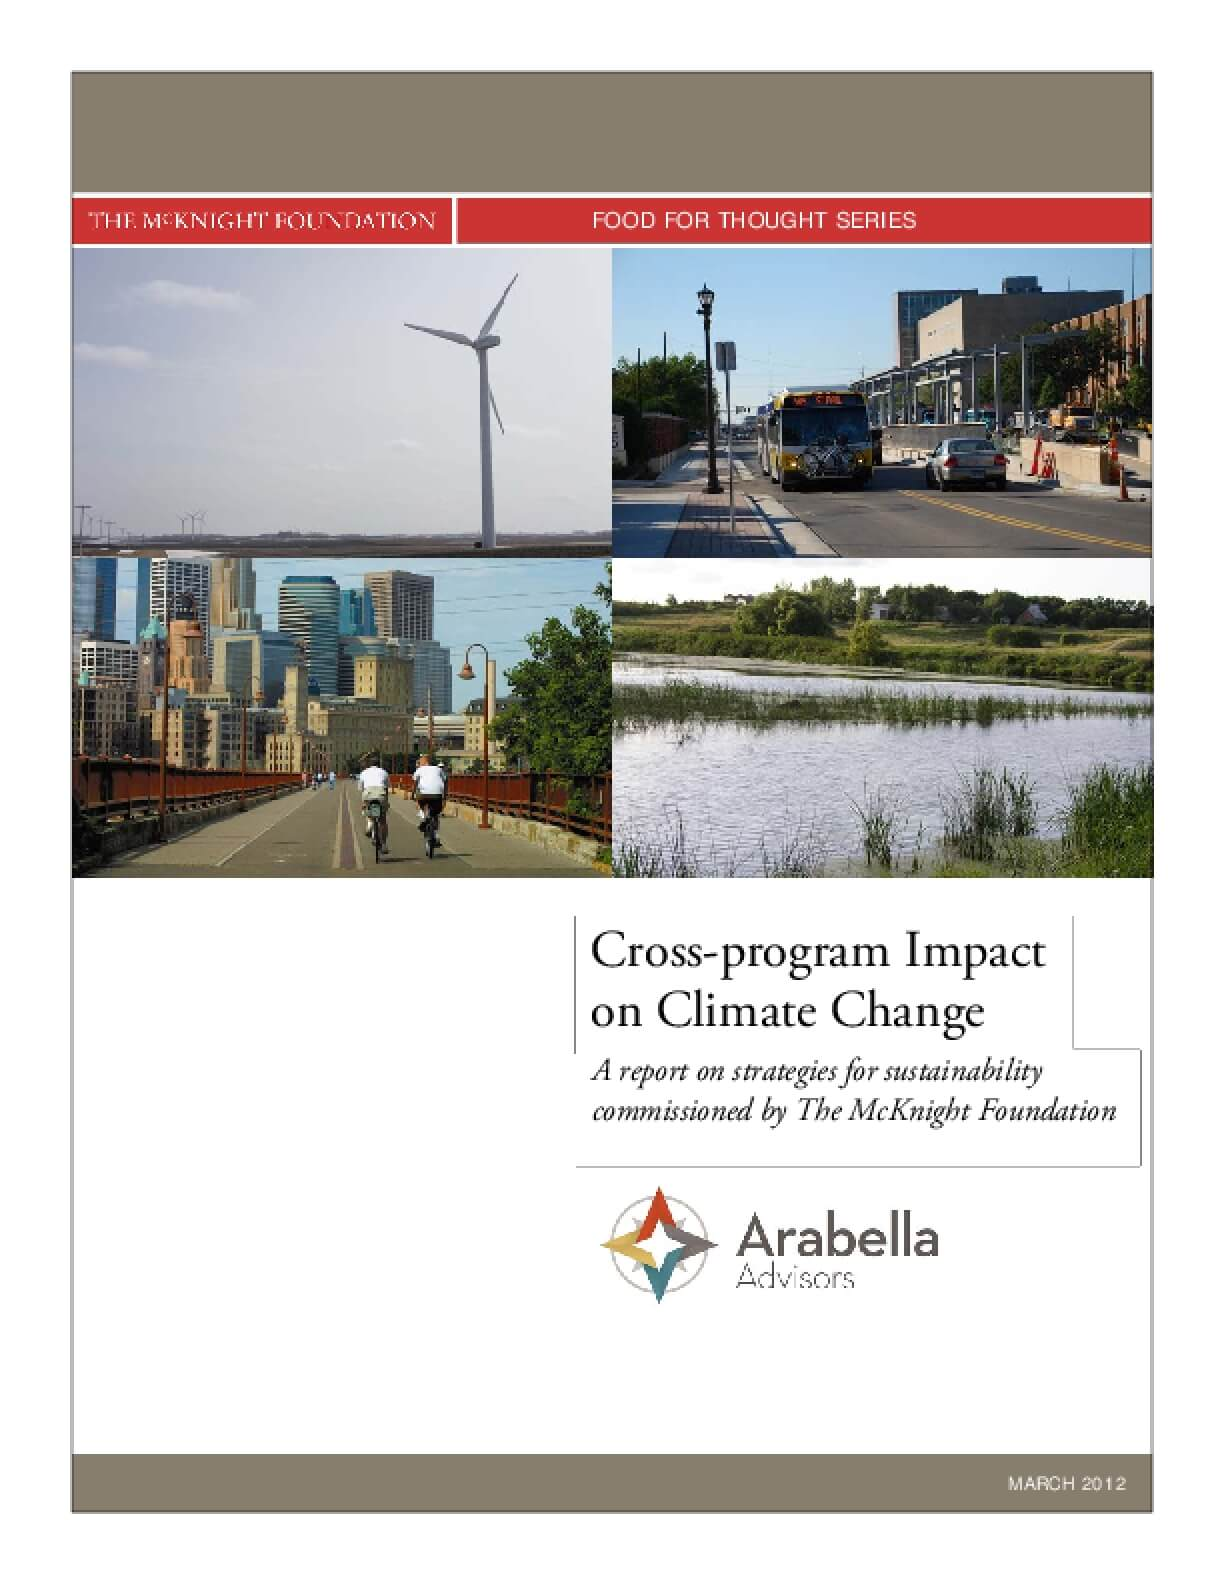 Cross-program Impact on Climate Change